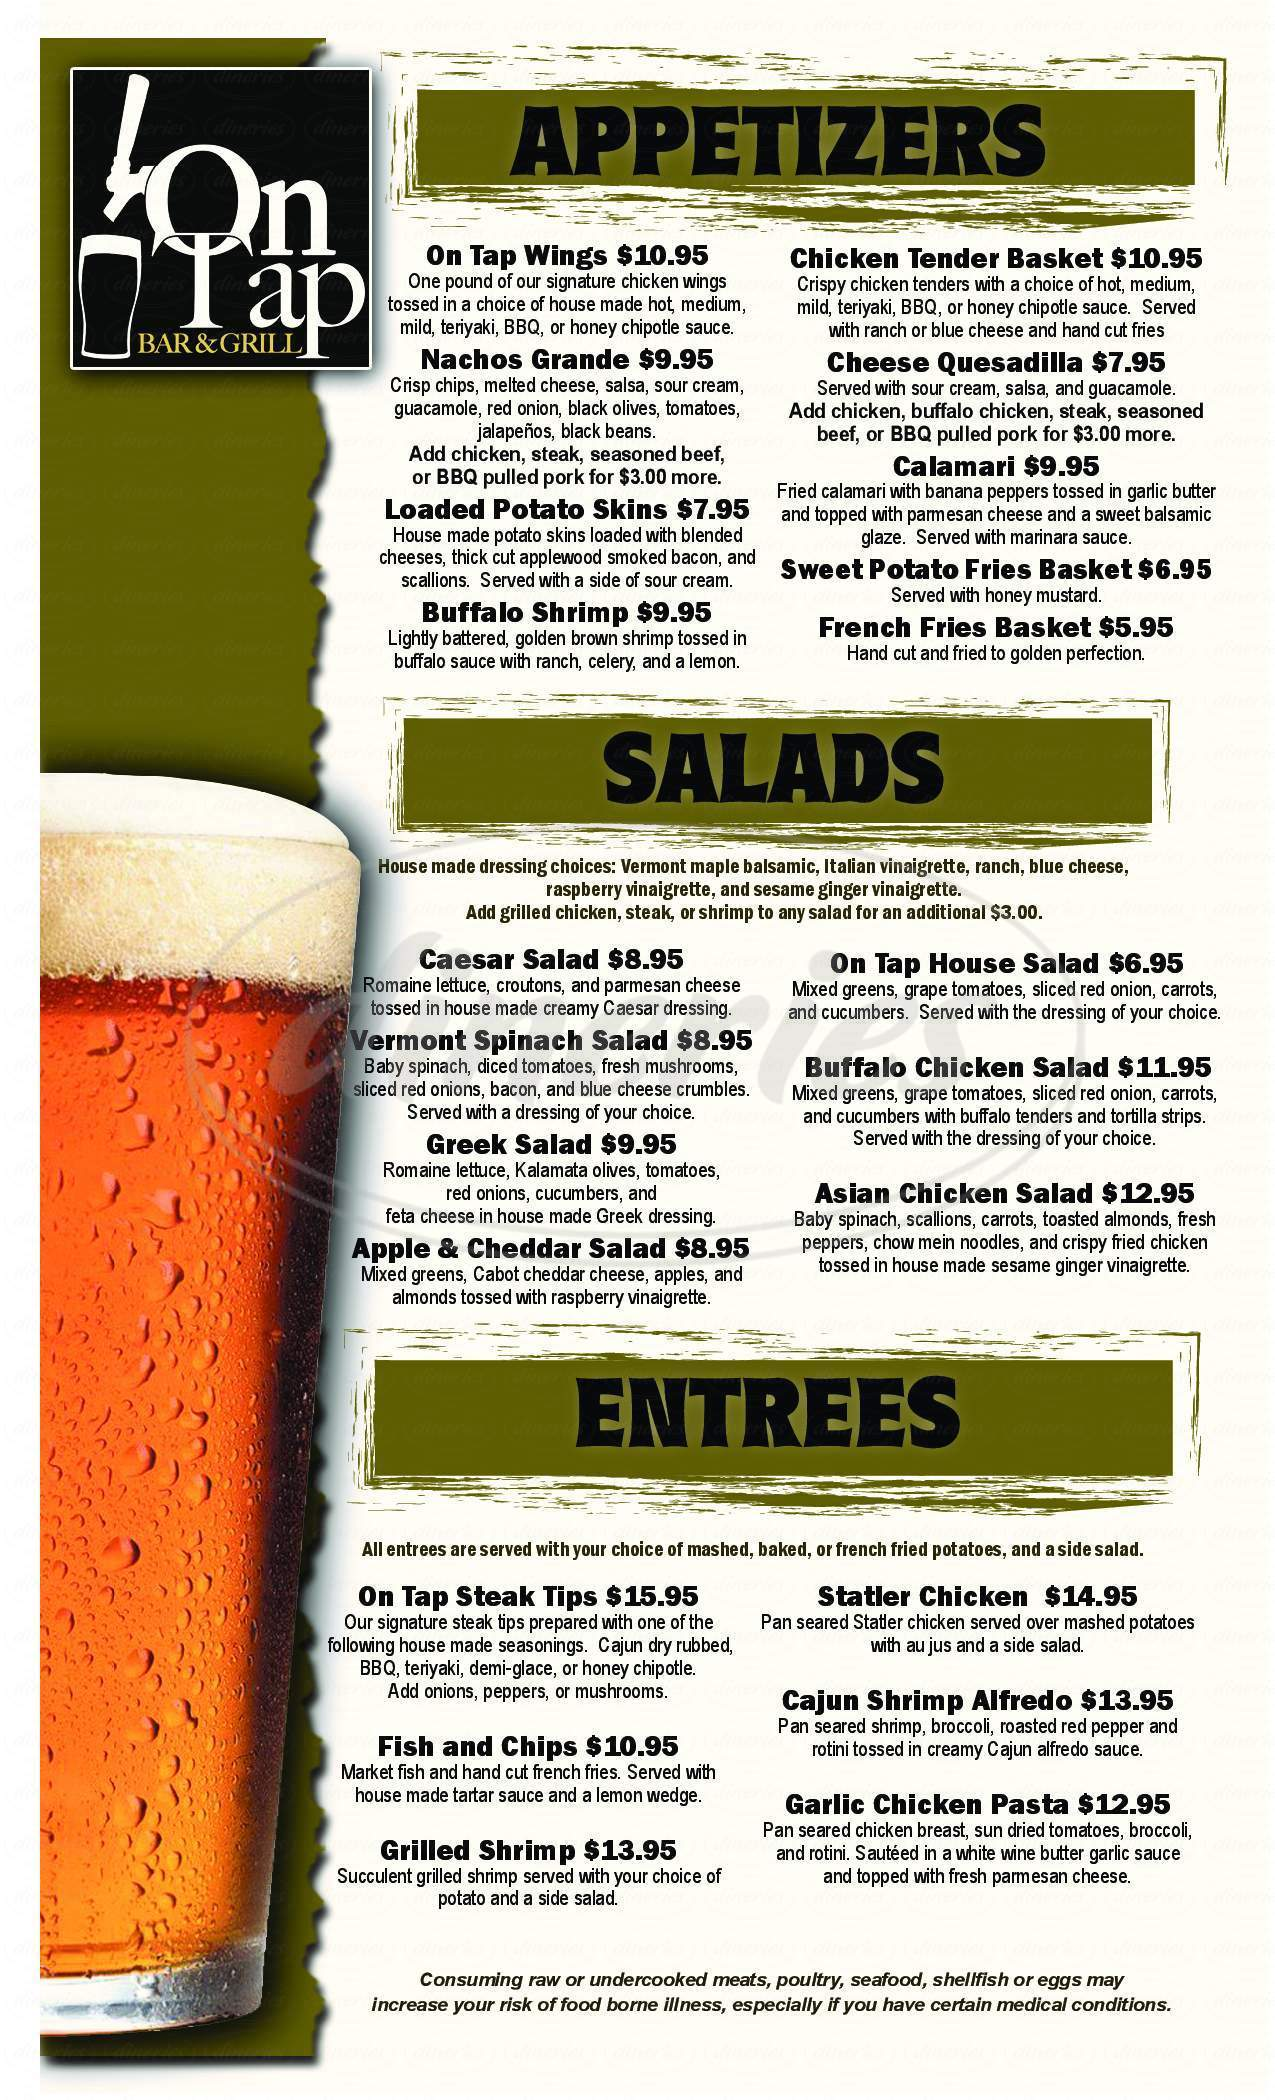 menu for On Tap Bar & Grill